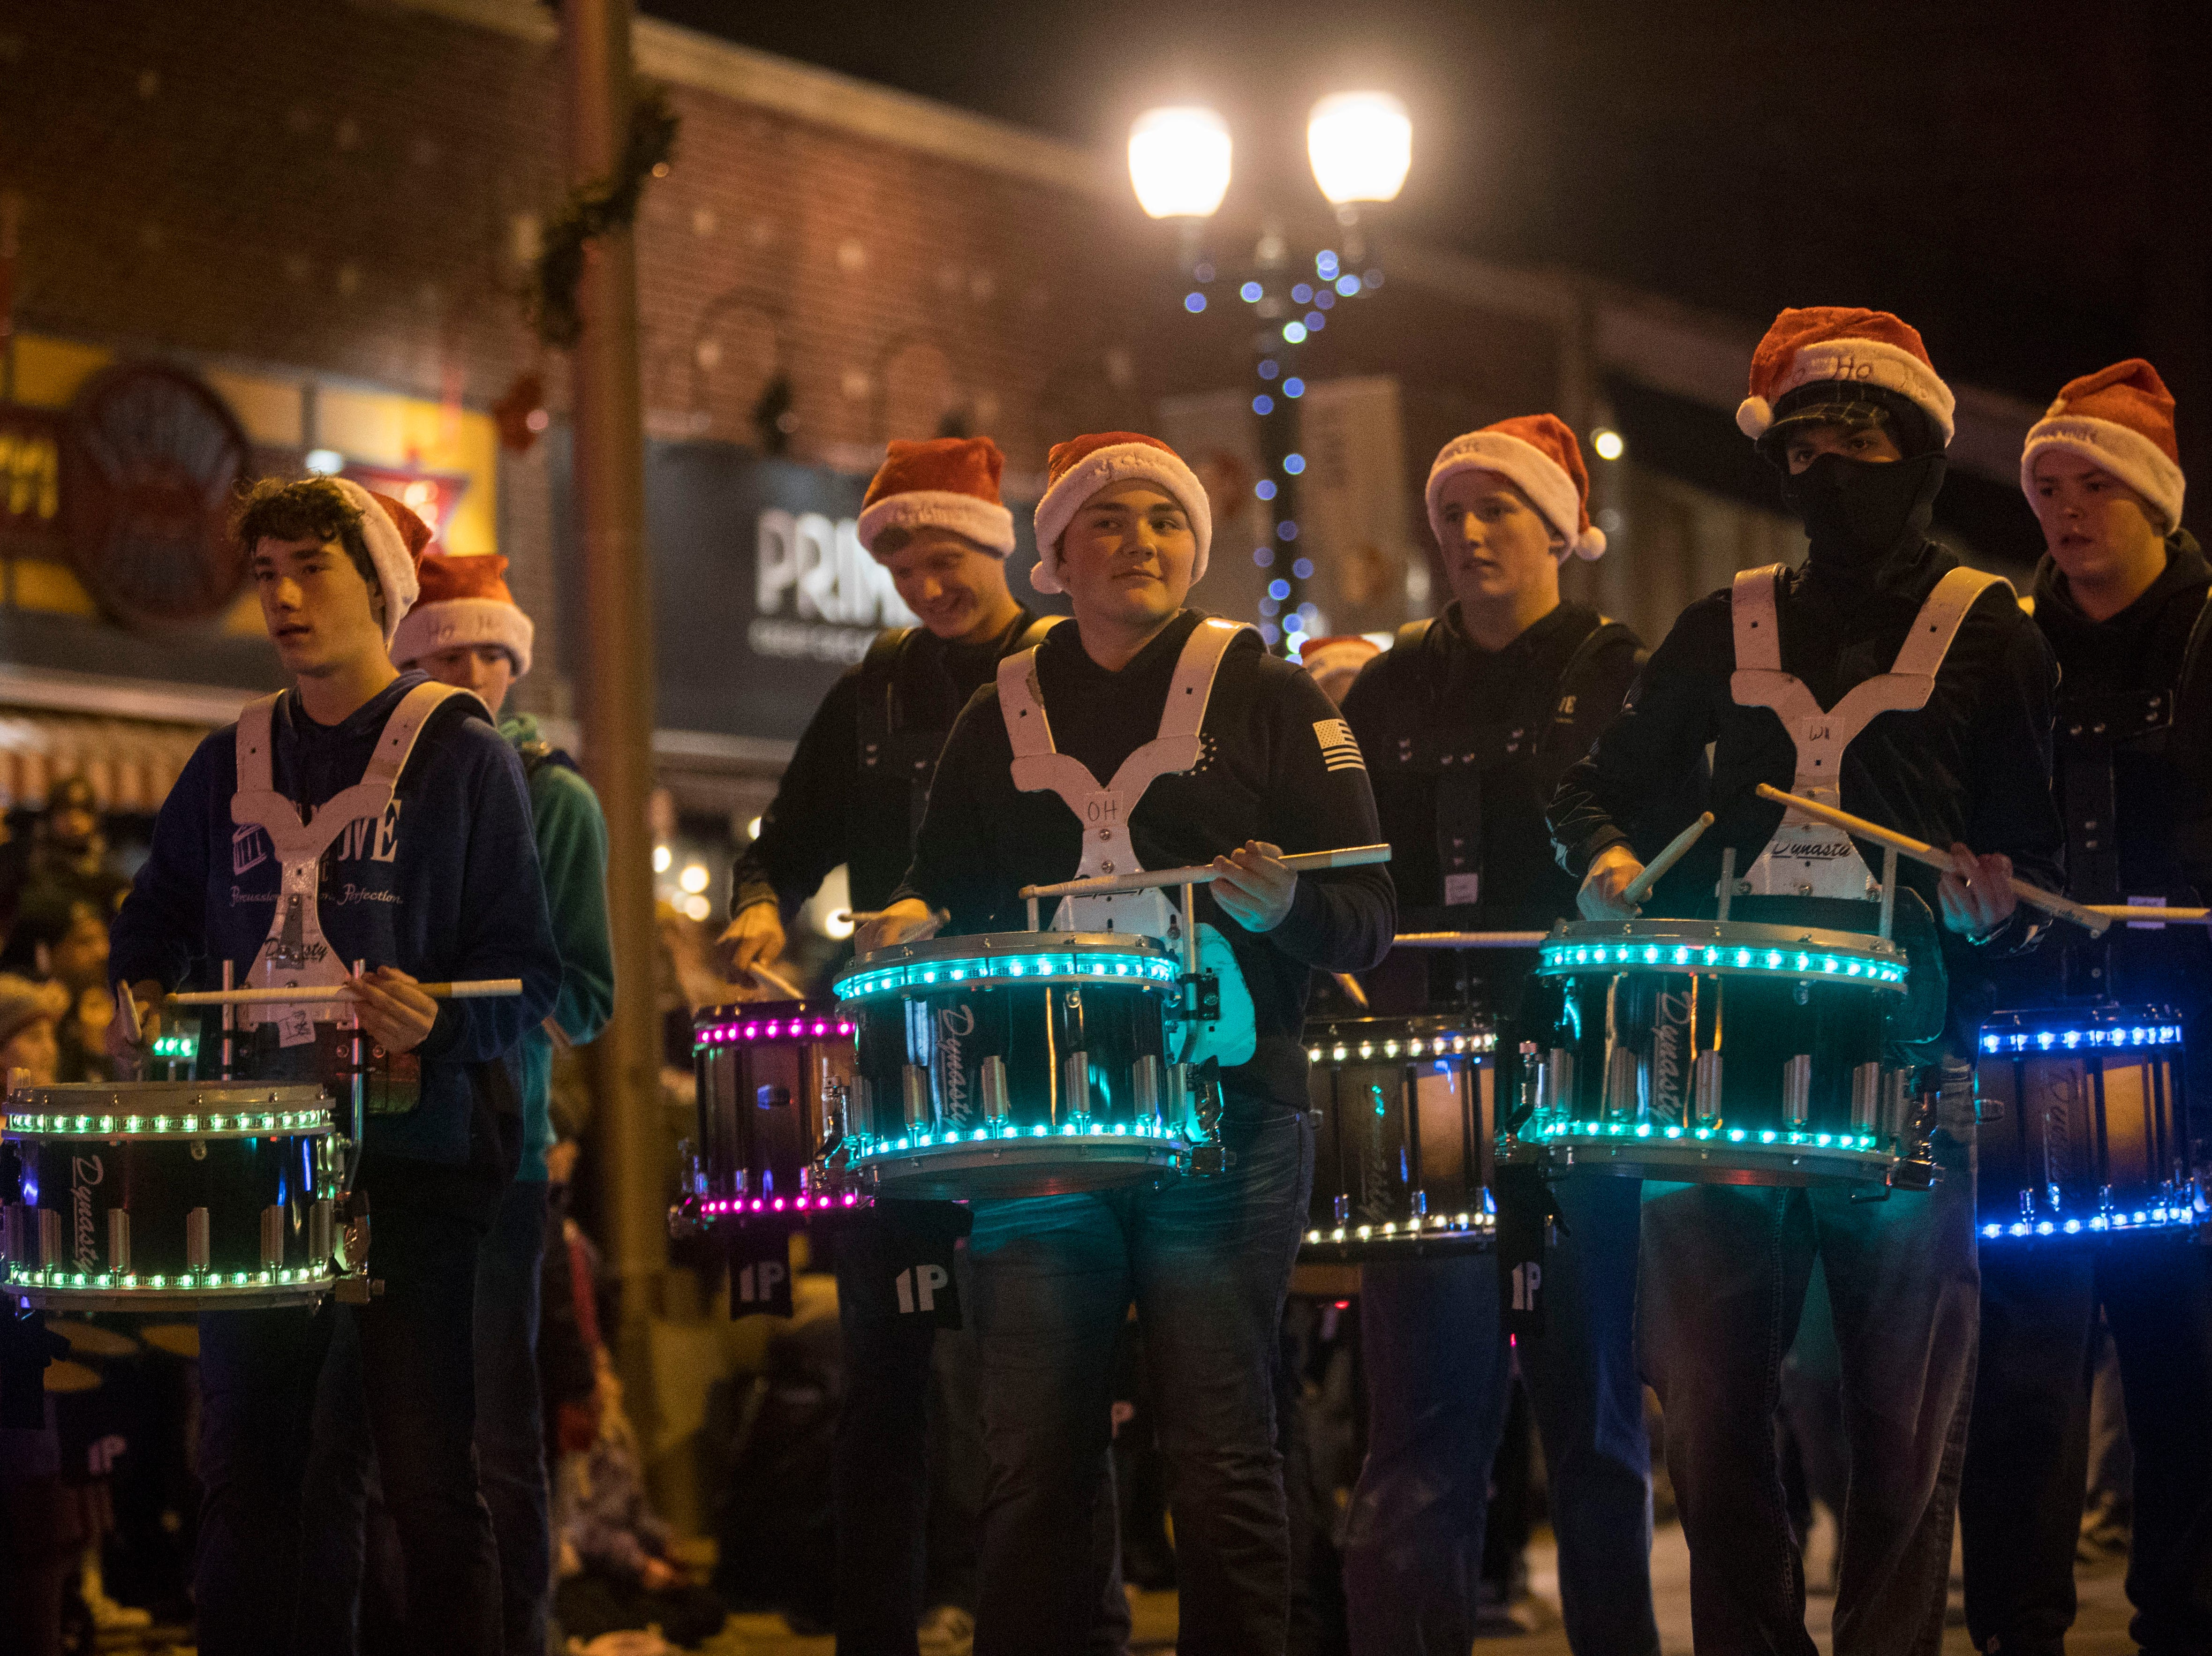 High school band participates in the annual Parade of Lights in downtown Sioux Falls, S.D., Friday, Nov. 23, 2018.